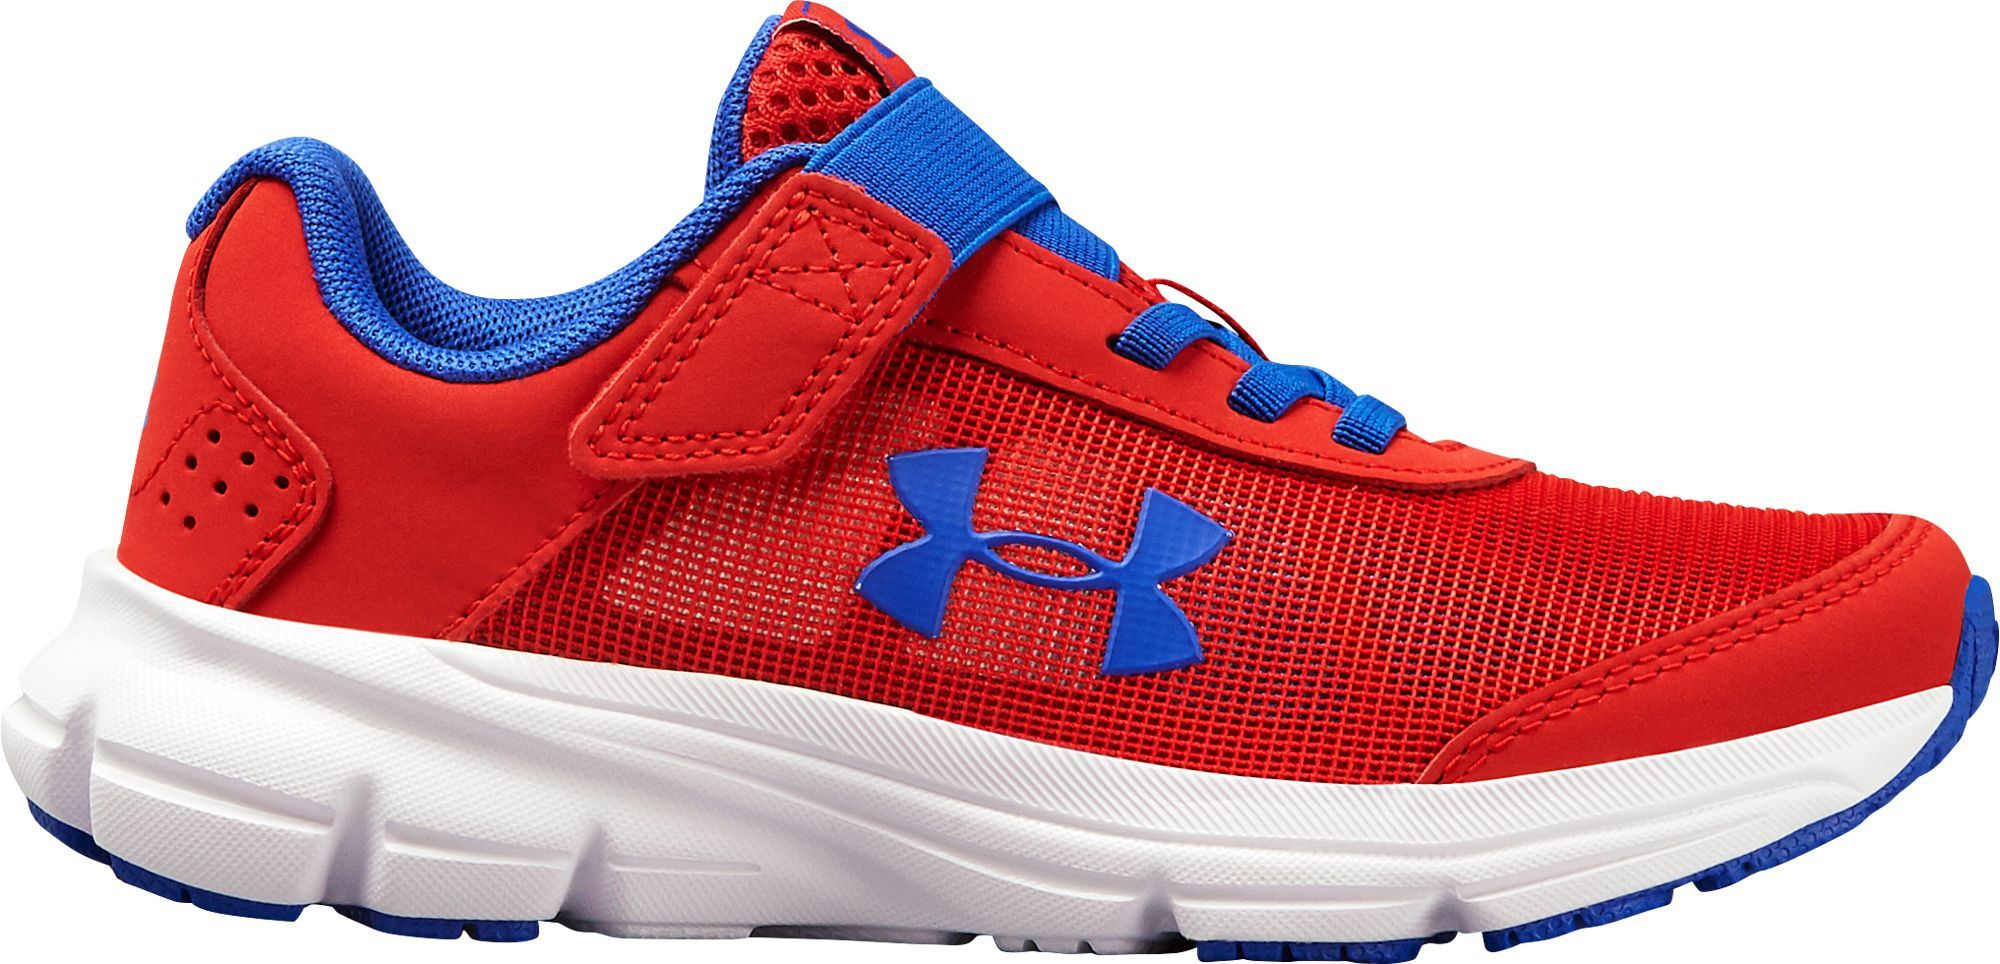 5e1a887355 Under Armour Kids' Preschool Rave 2 AC Running Shoes, Boy's ...